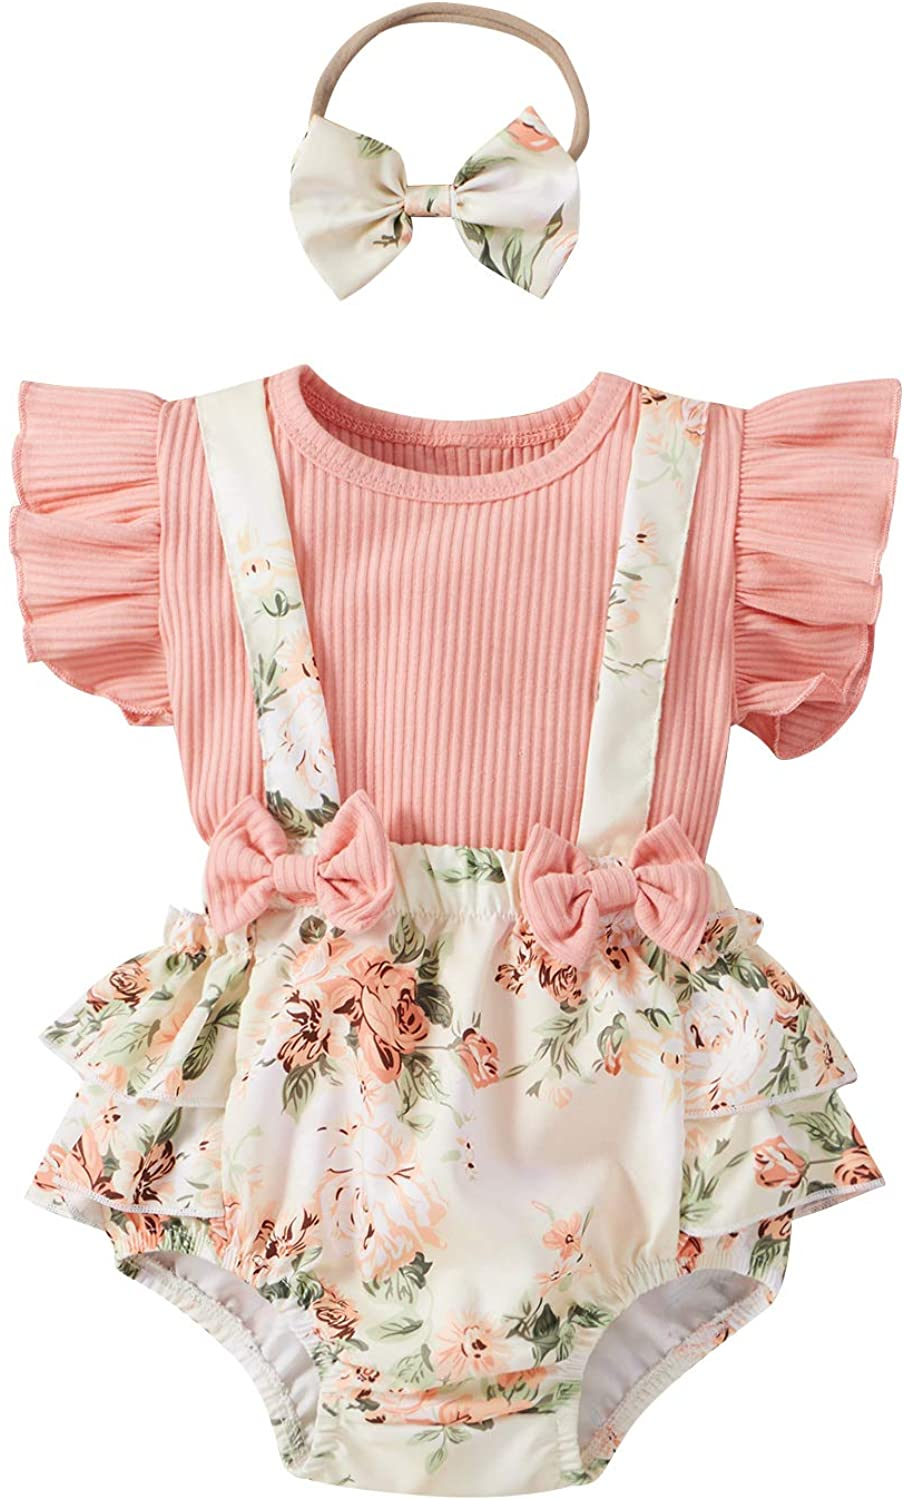 Infant Baby Girl Clothes 3PCS, Ruffle Top + Floral Suspender Shorts + Headband